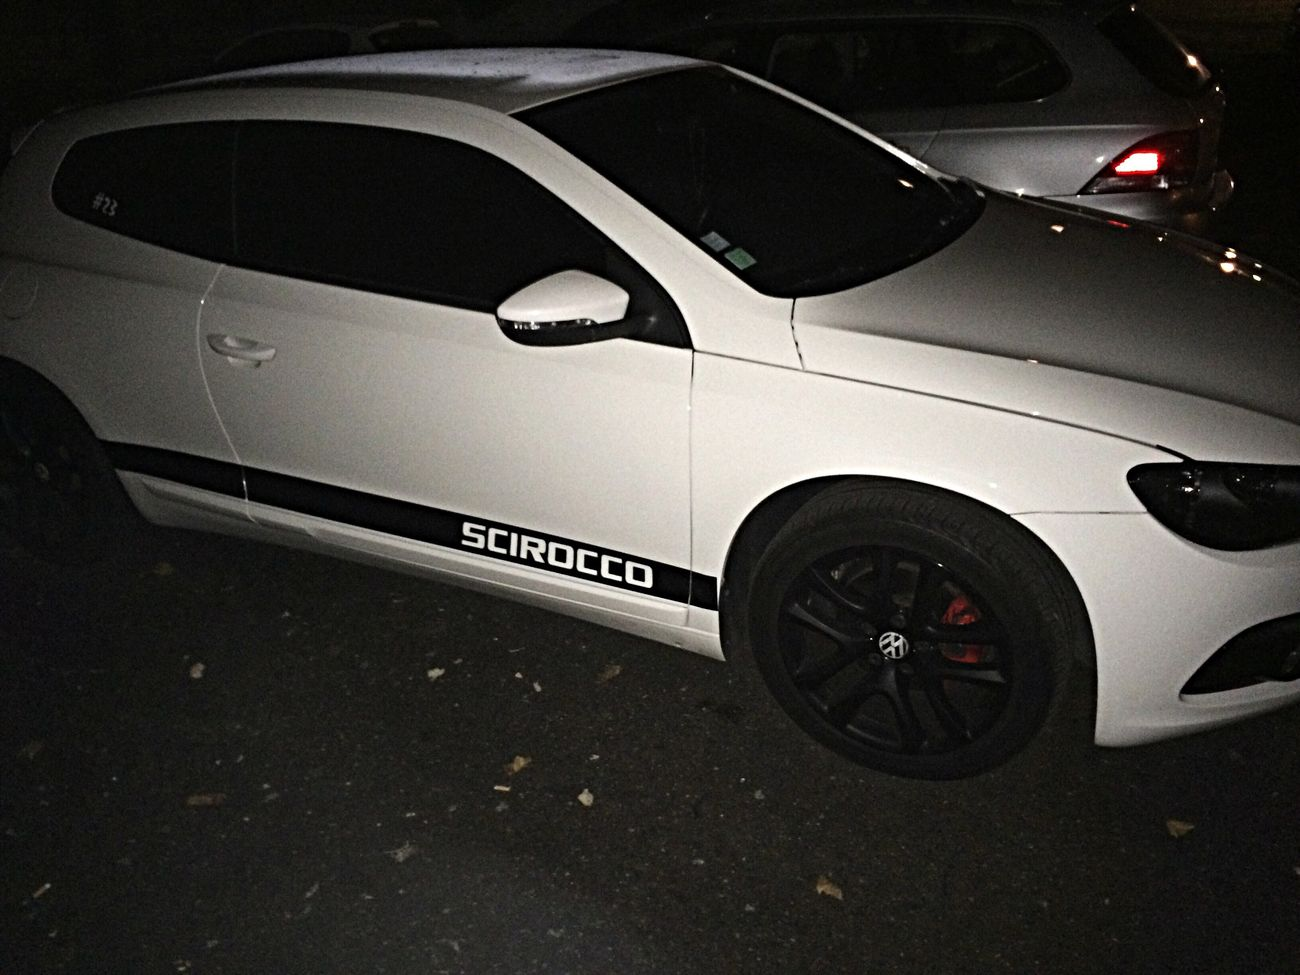 My best Friend's car Sirocco Sirocco SiroccoR